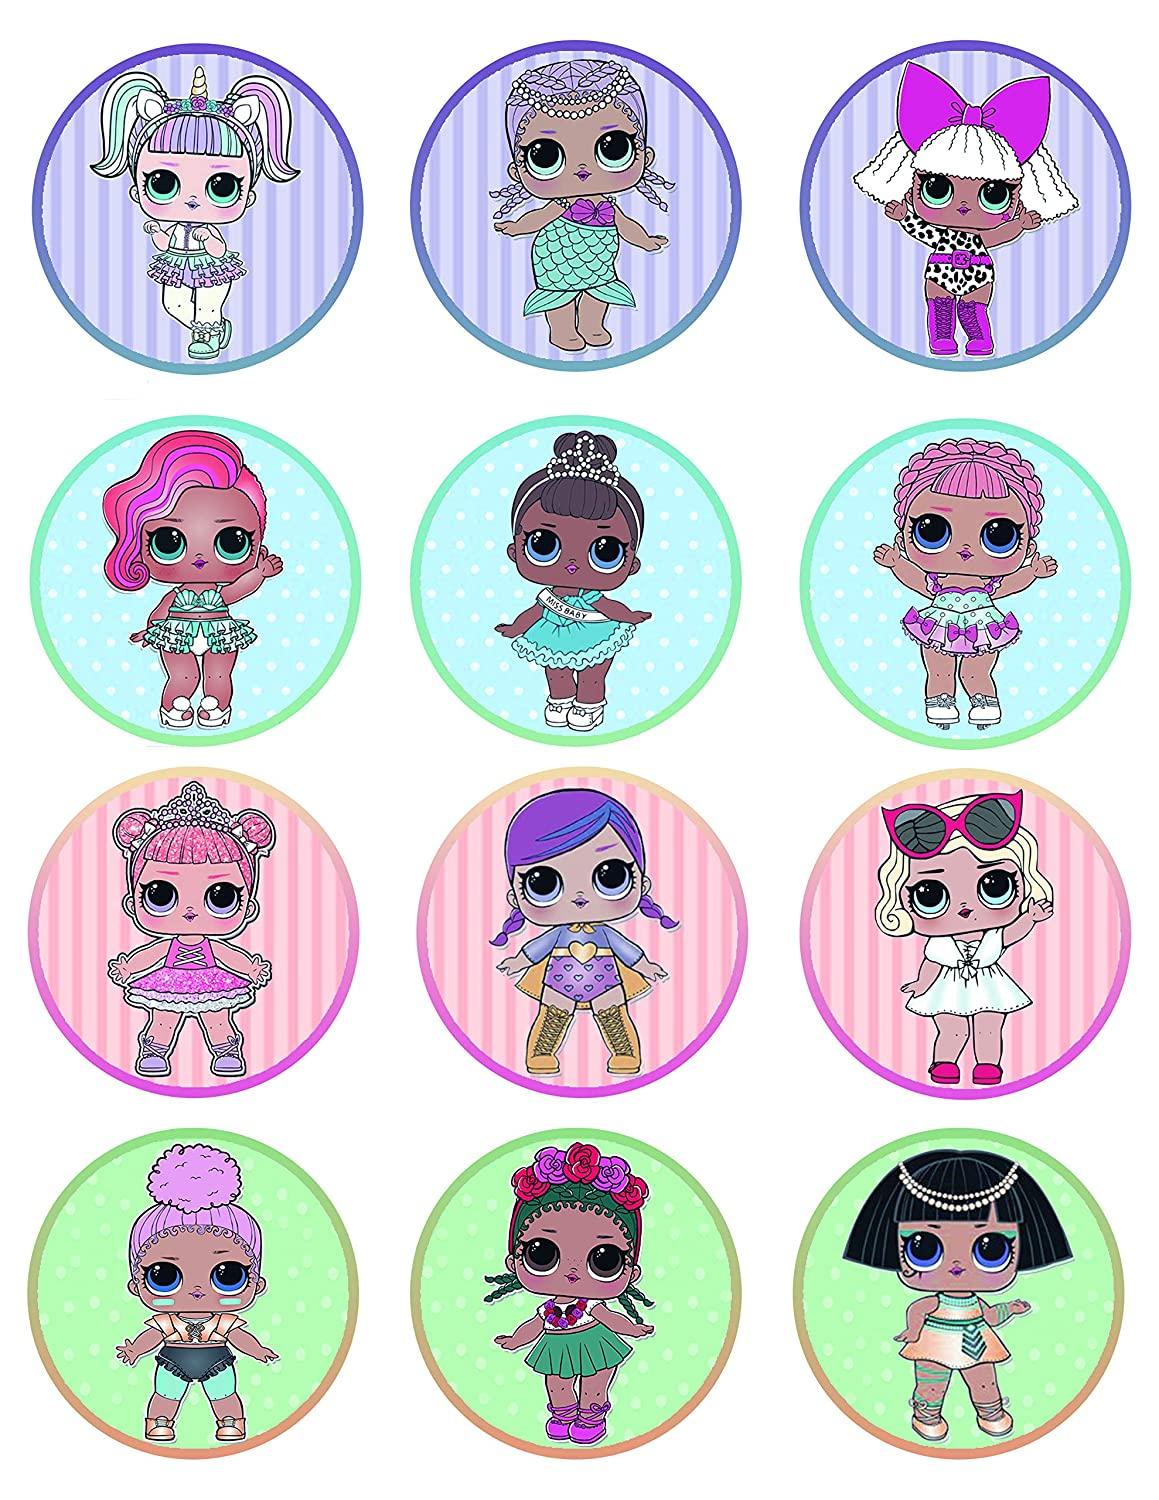 LOL Surprise Pets Cupcake Toppers Set of 12 LOL Surprise Dolls Cupcake Toppers